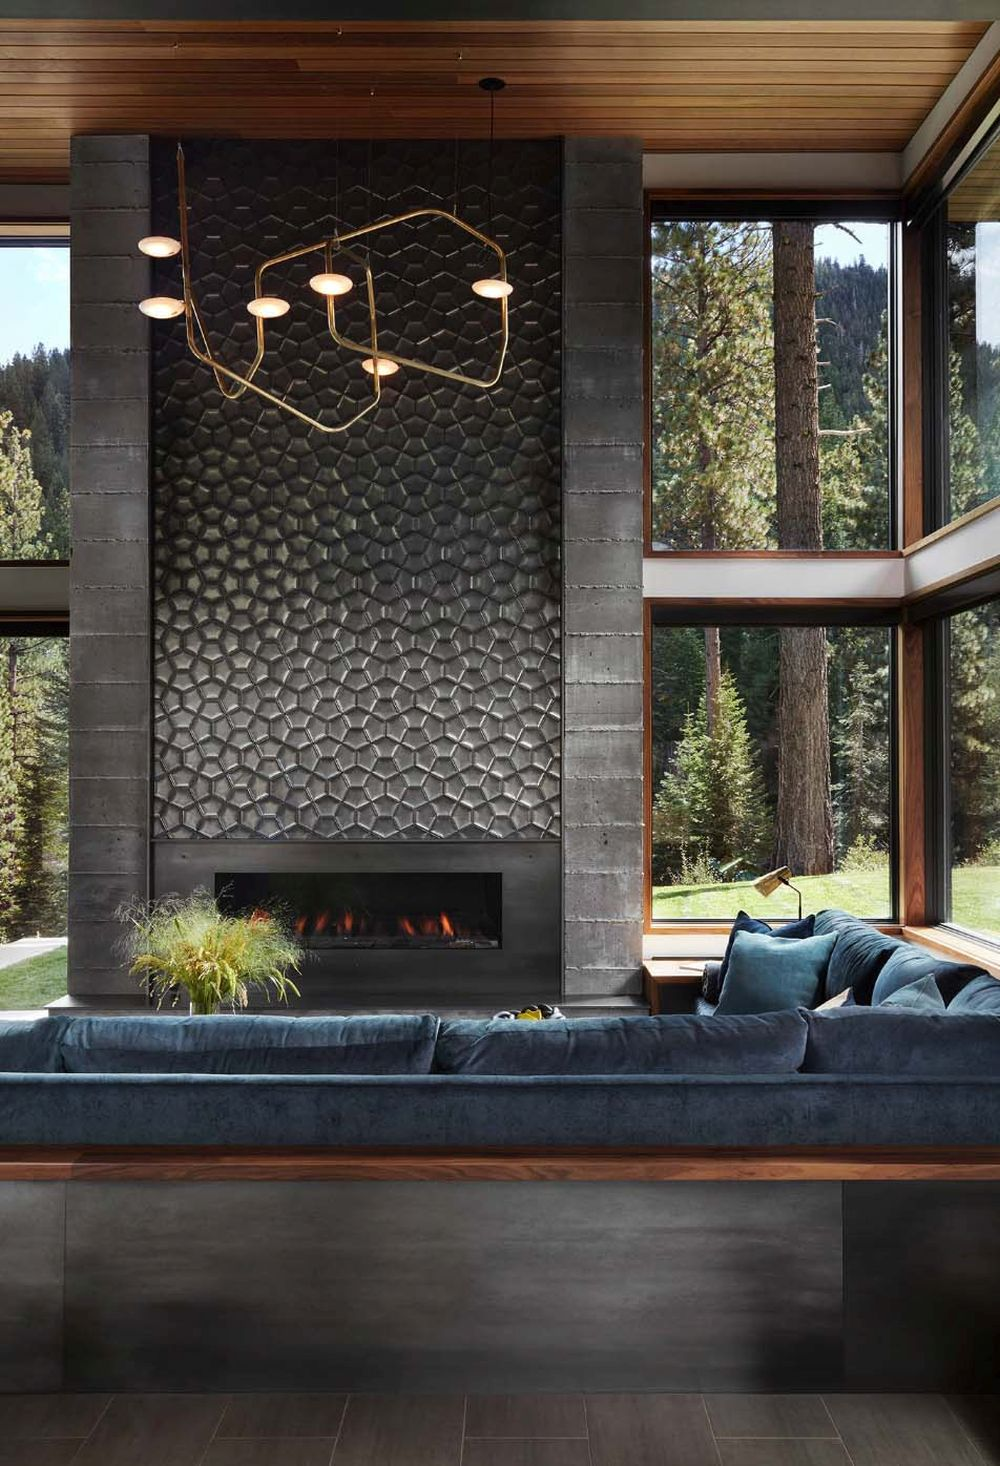 The fireplace wall is covered in little hexagon-shaped stones and this gives an amazing and eye-catching look